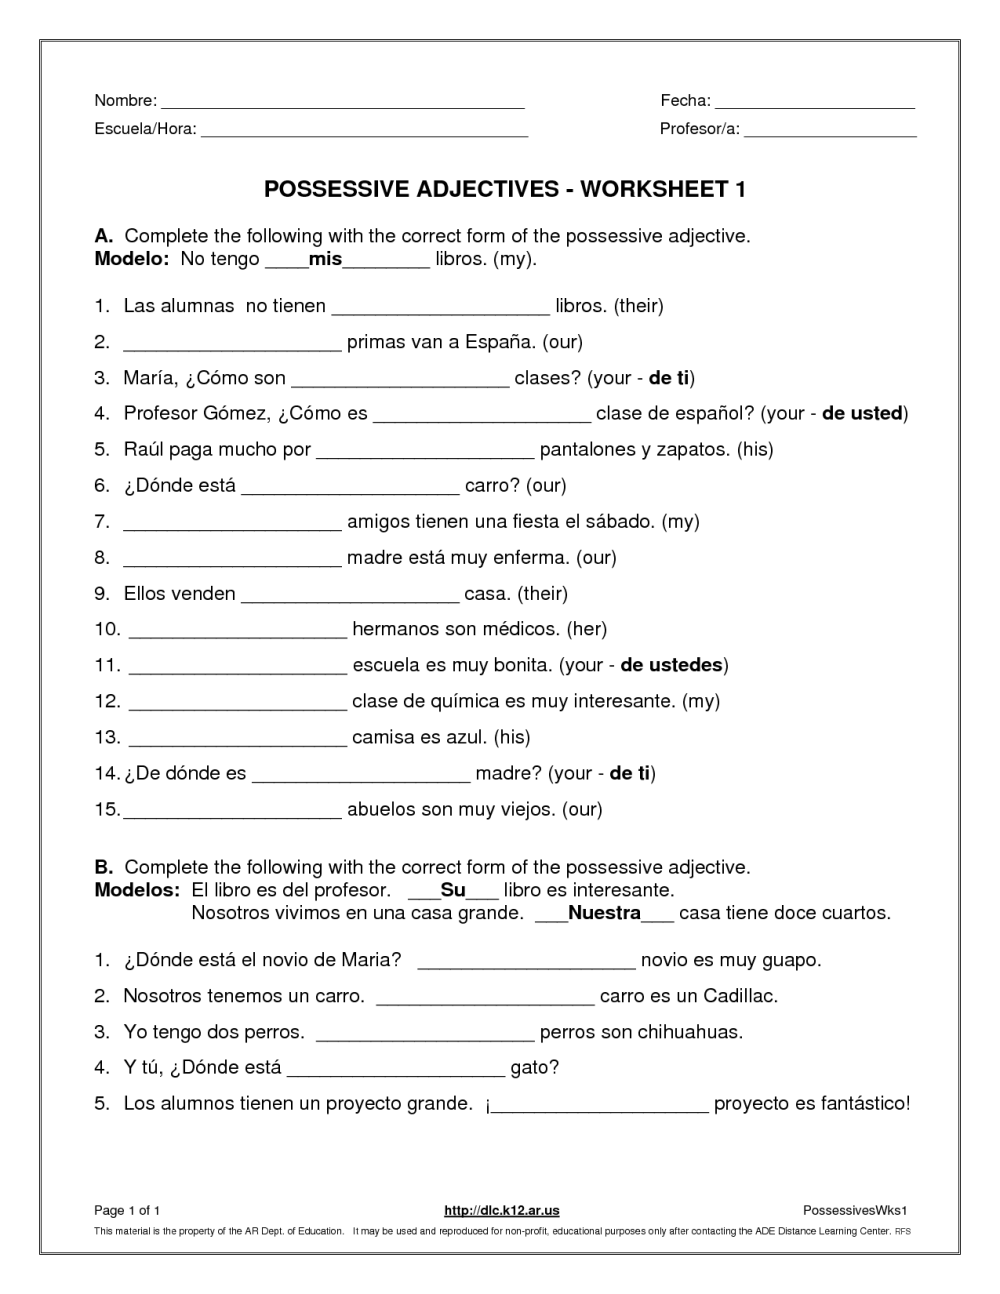 medium resolution of Possessive Pronouns His Her Worksheets   Printable Worksheets and  Activities for Teachers